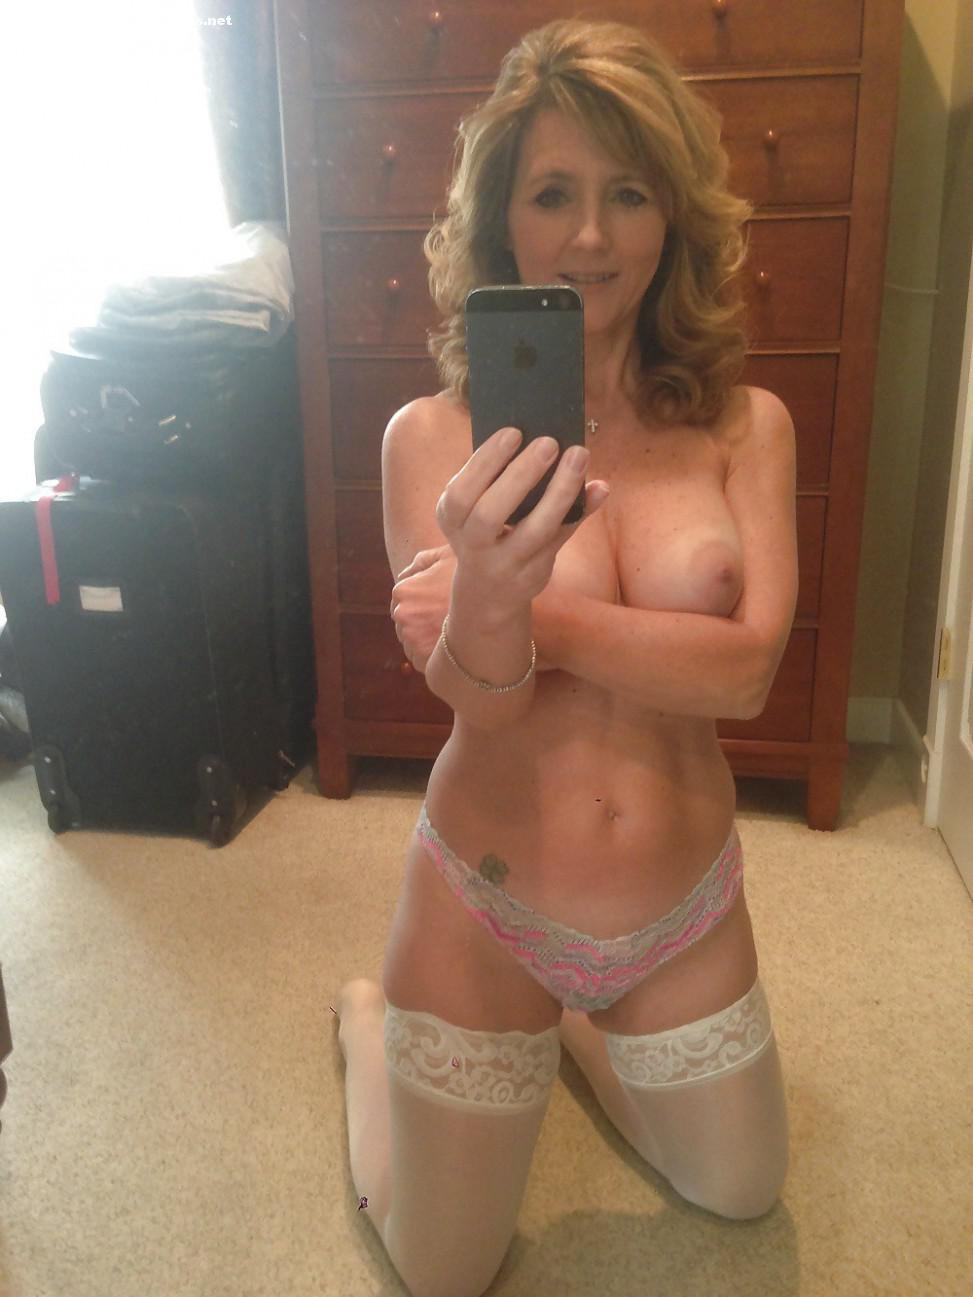 amatuer nude mom selfies